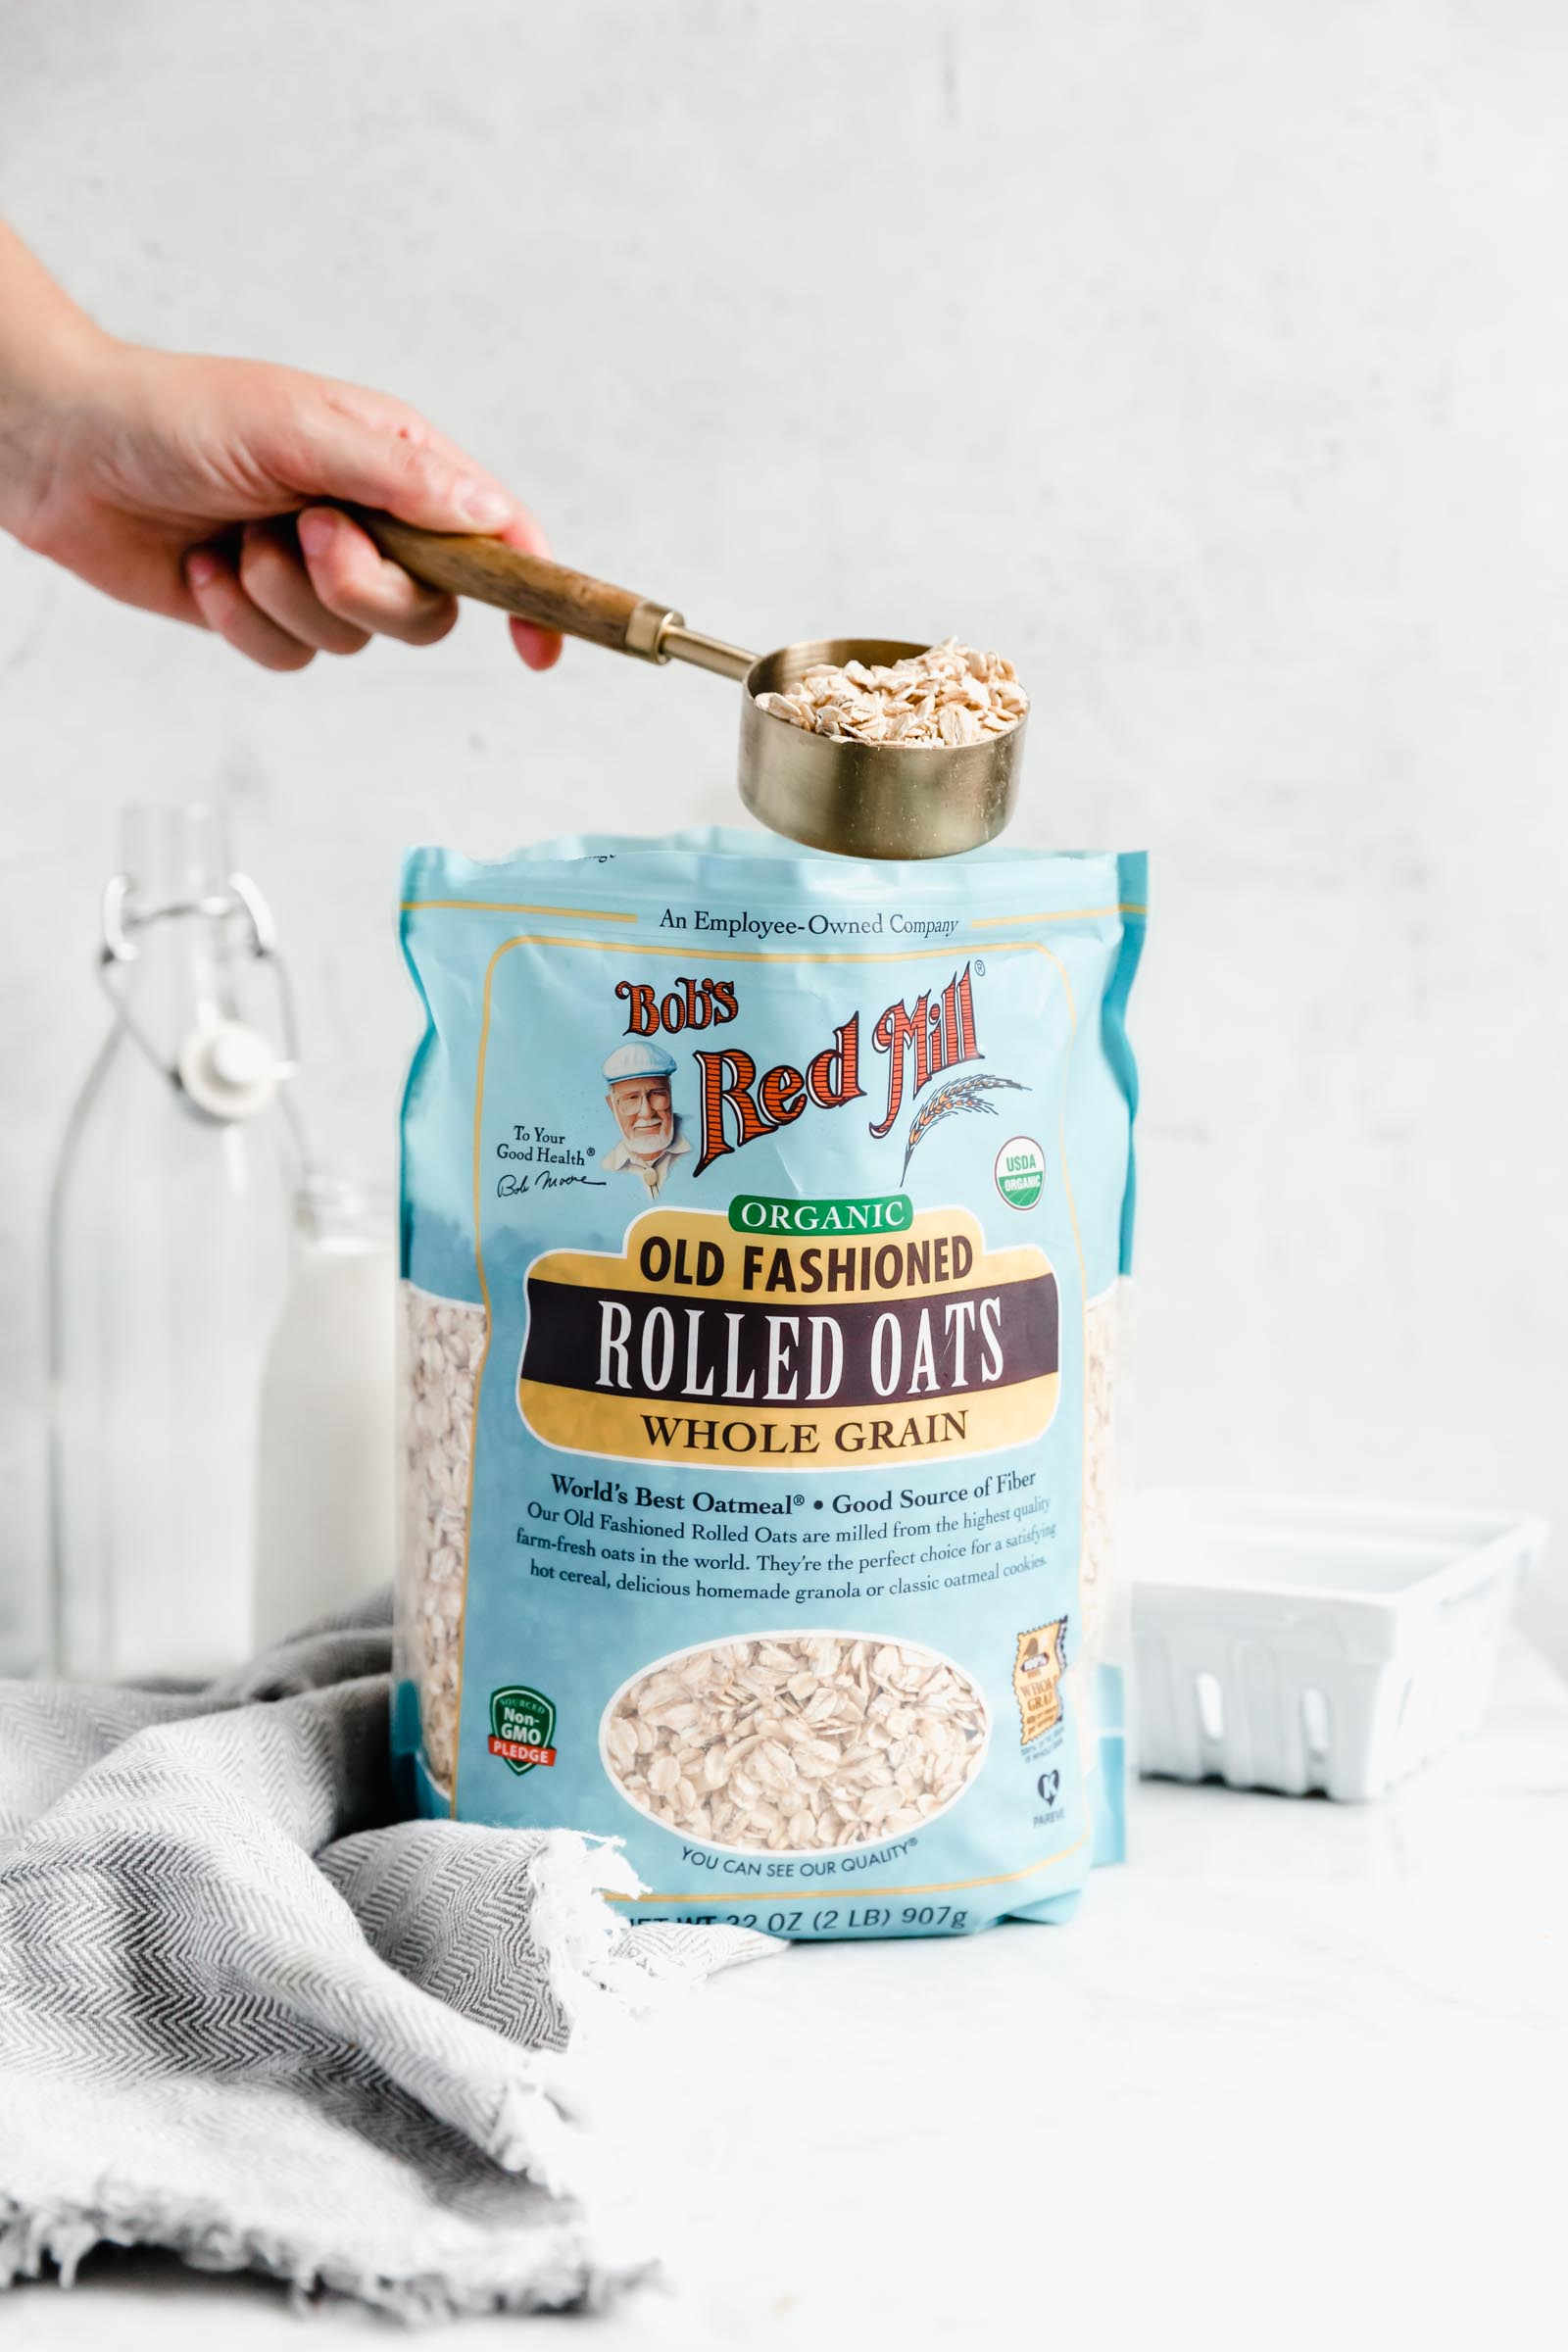 bob's red mill flours rolled oats